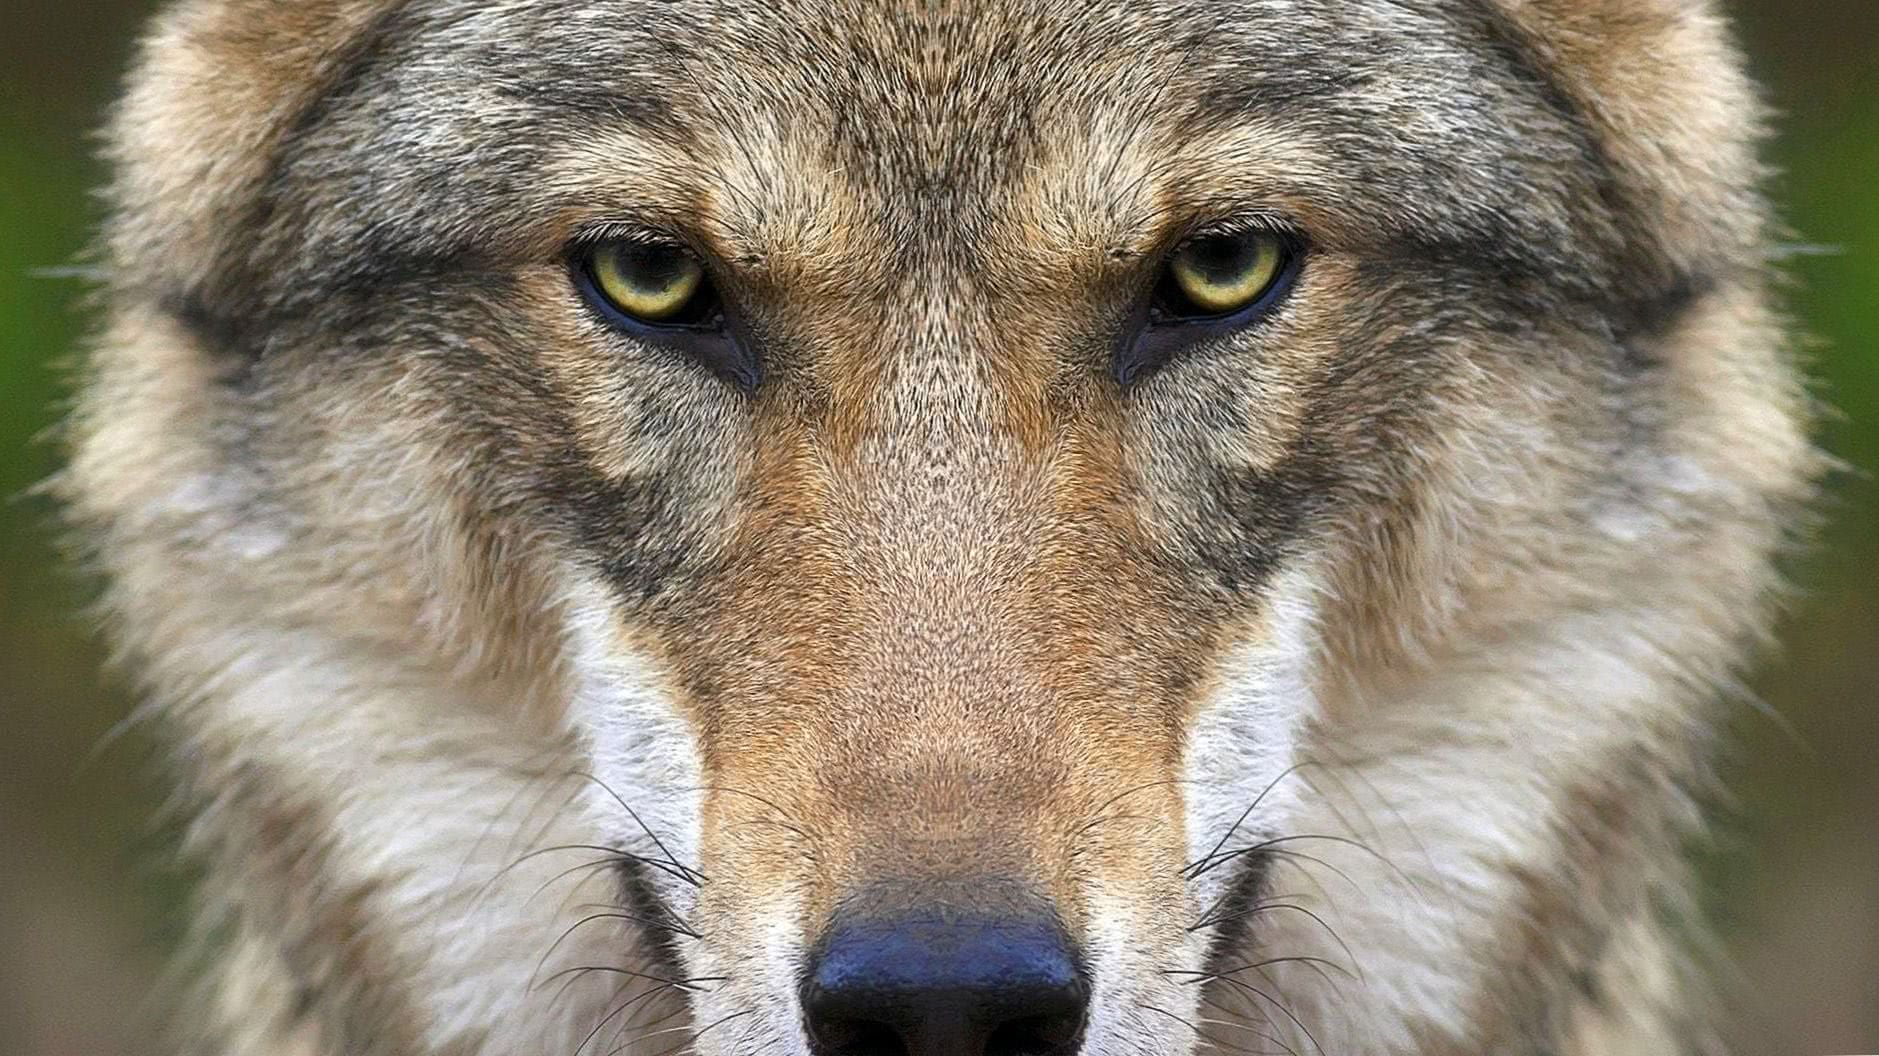 HD Wallpapers Of Wolf Face